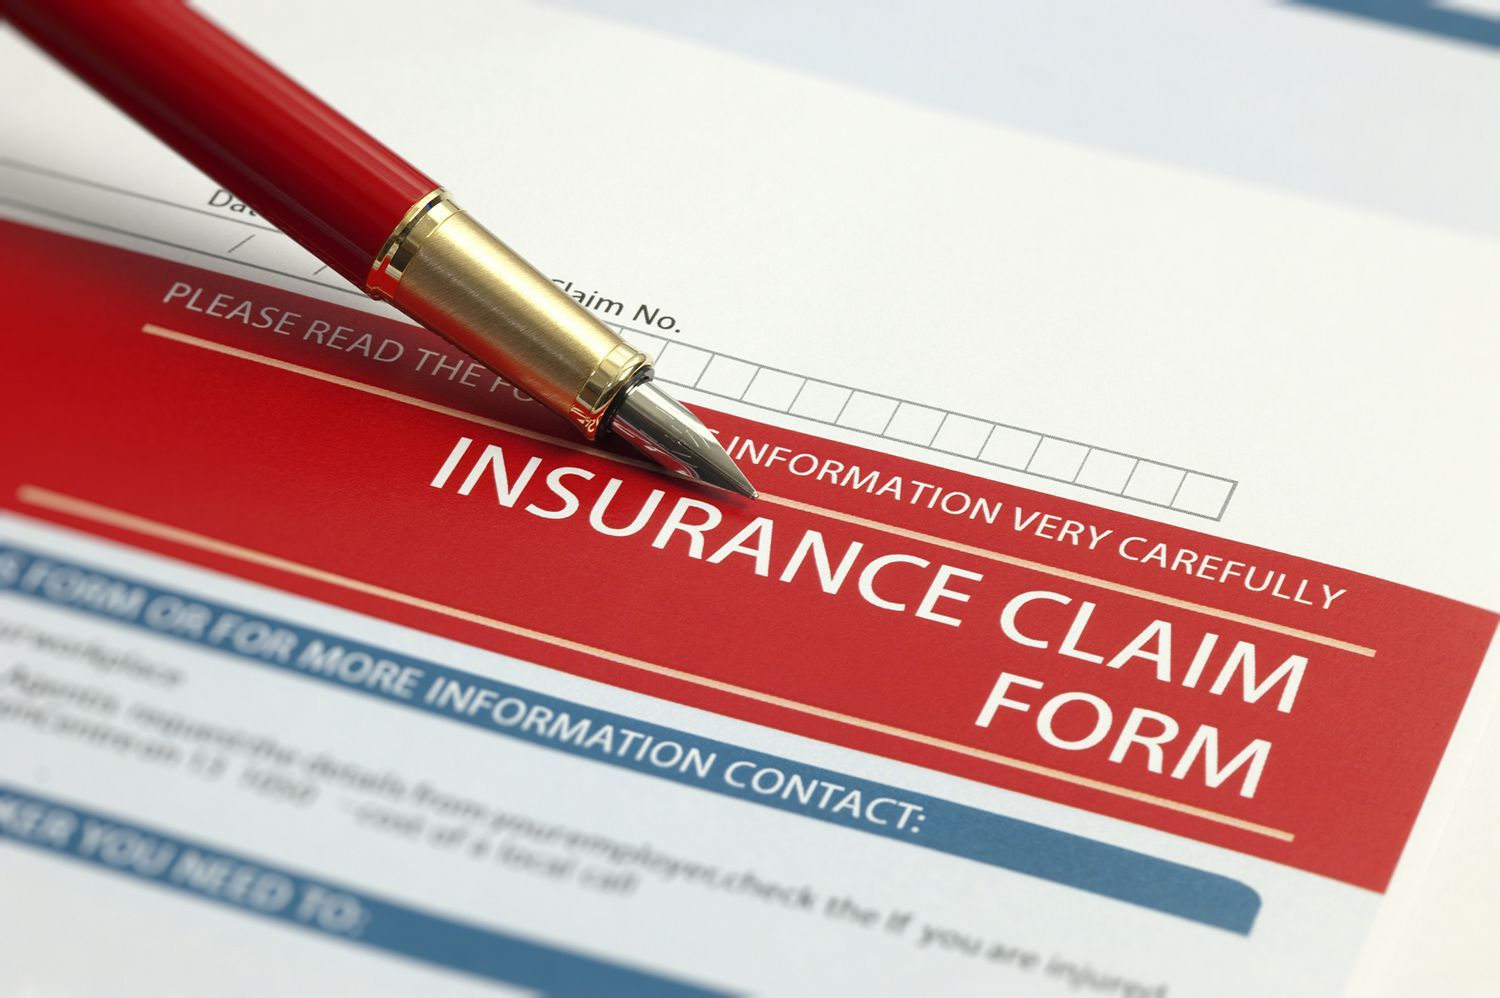 How Does the 80 Rule for Home Insurance Work? Home